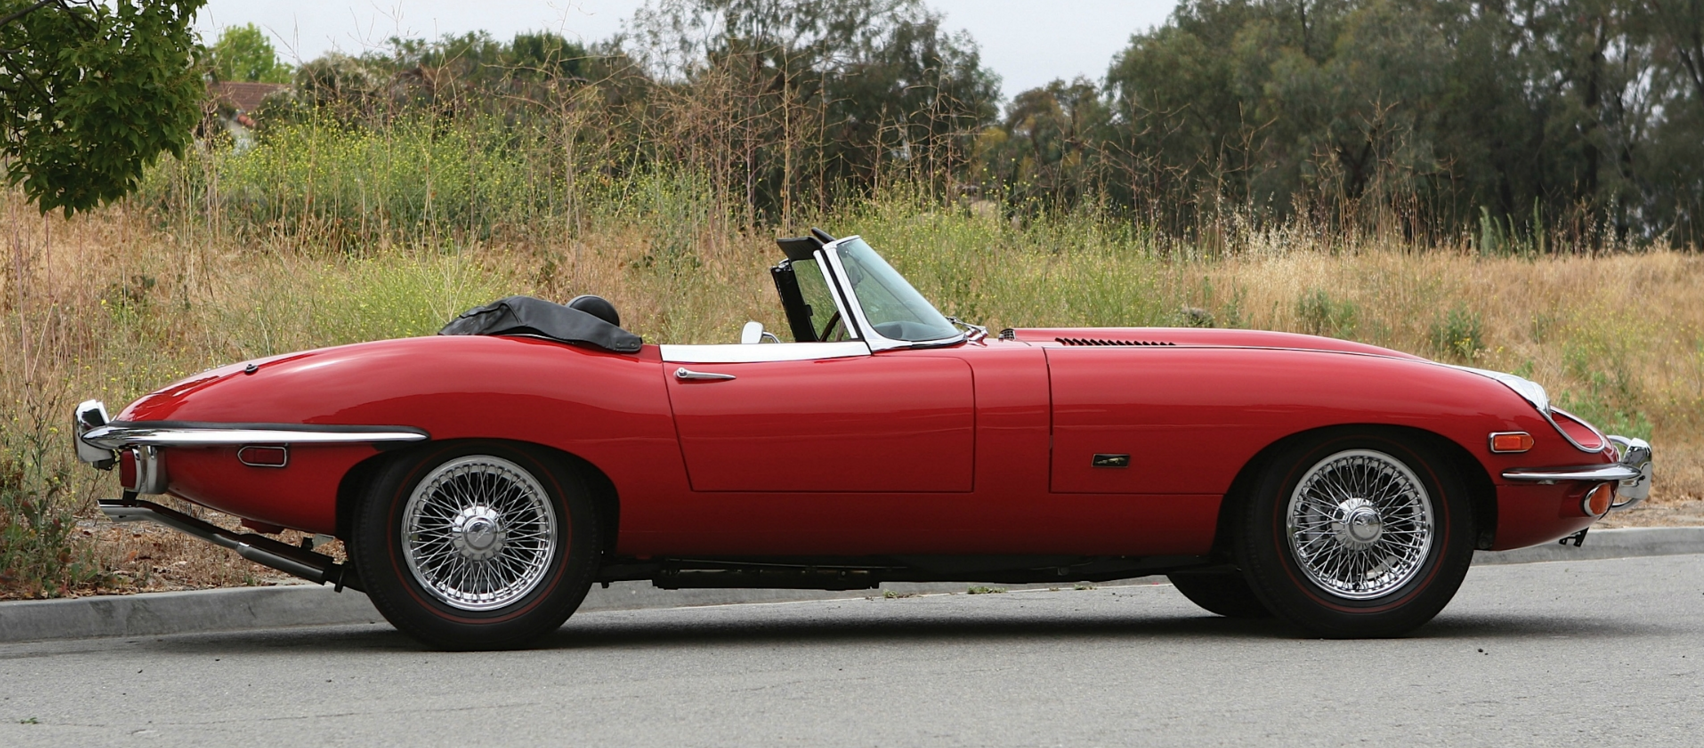 1971 Jaguar E-Type Series III Roadster